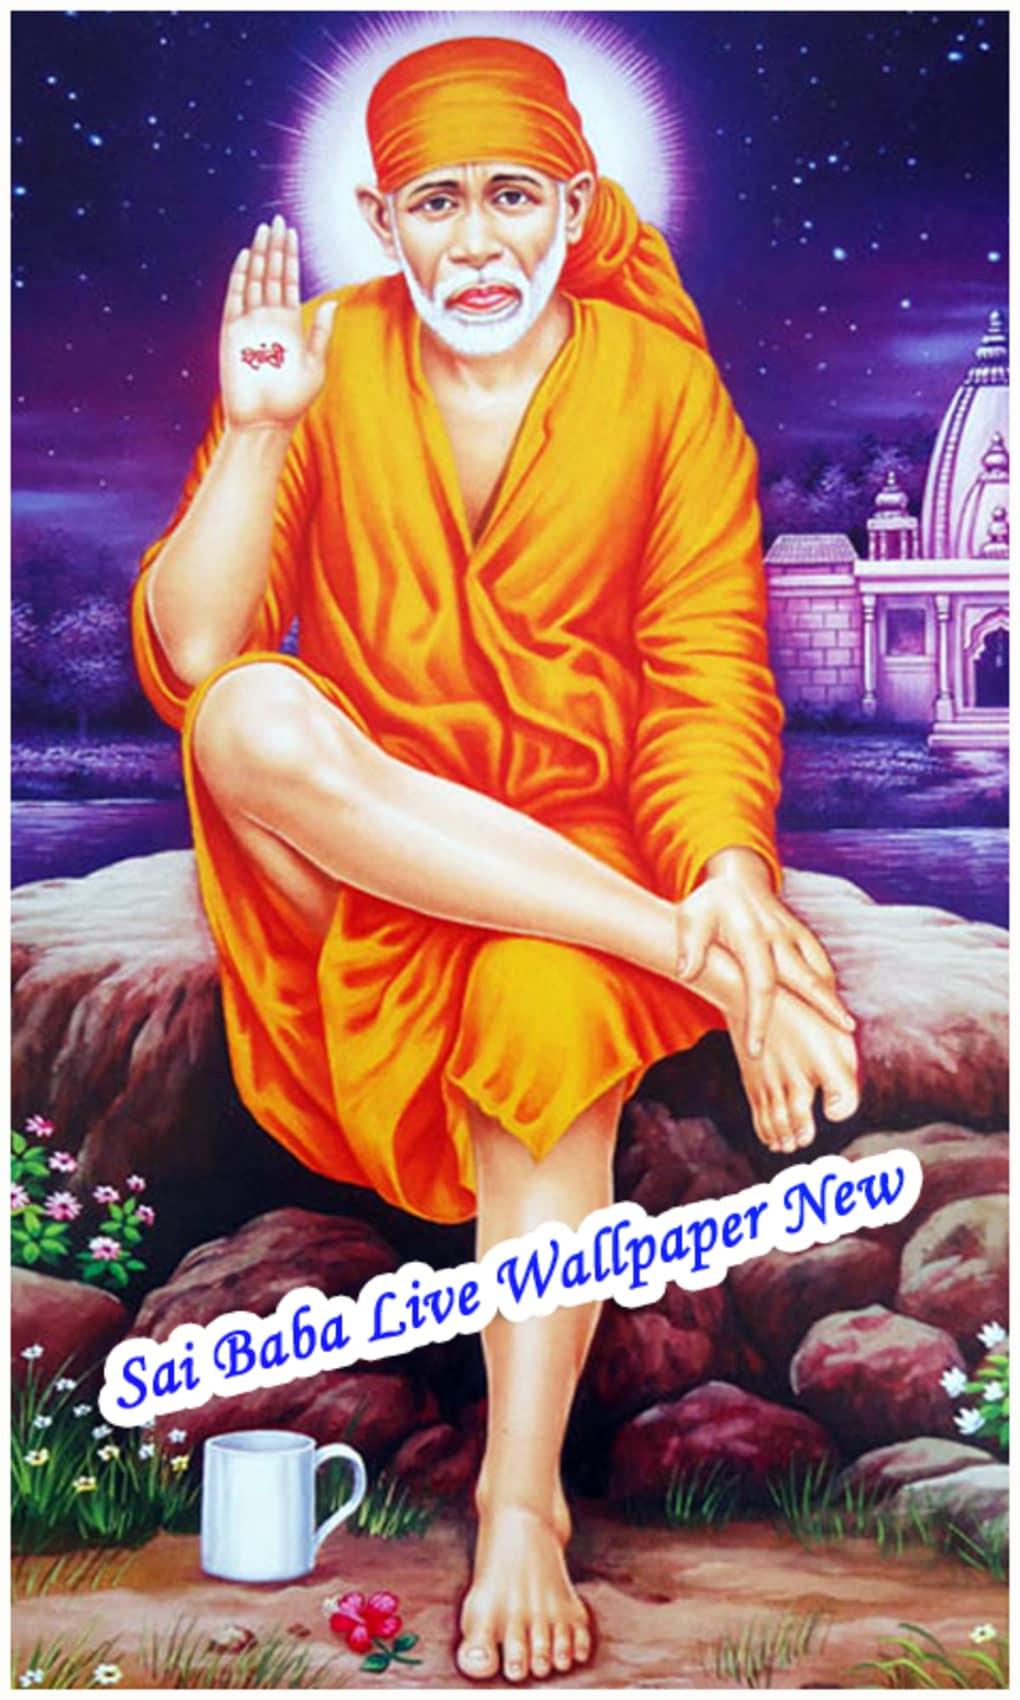 Sai Baba Live Wallpaper New For Android Download